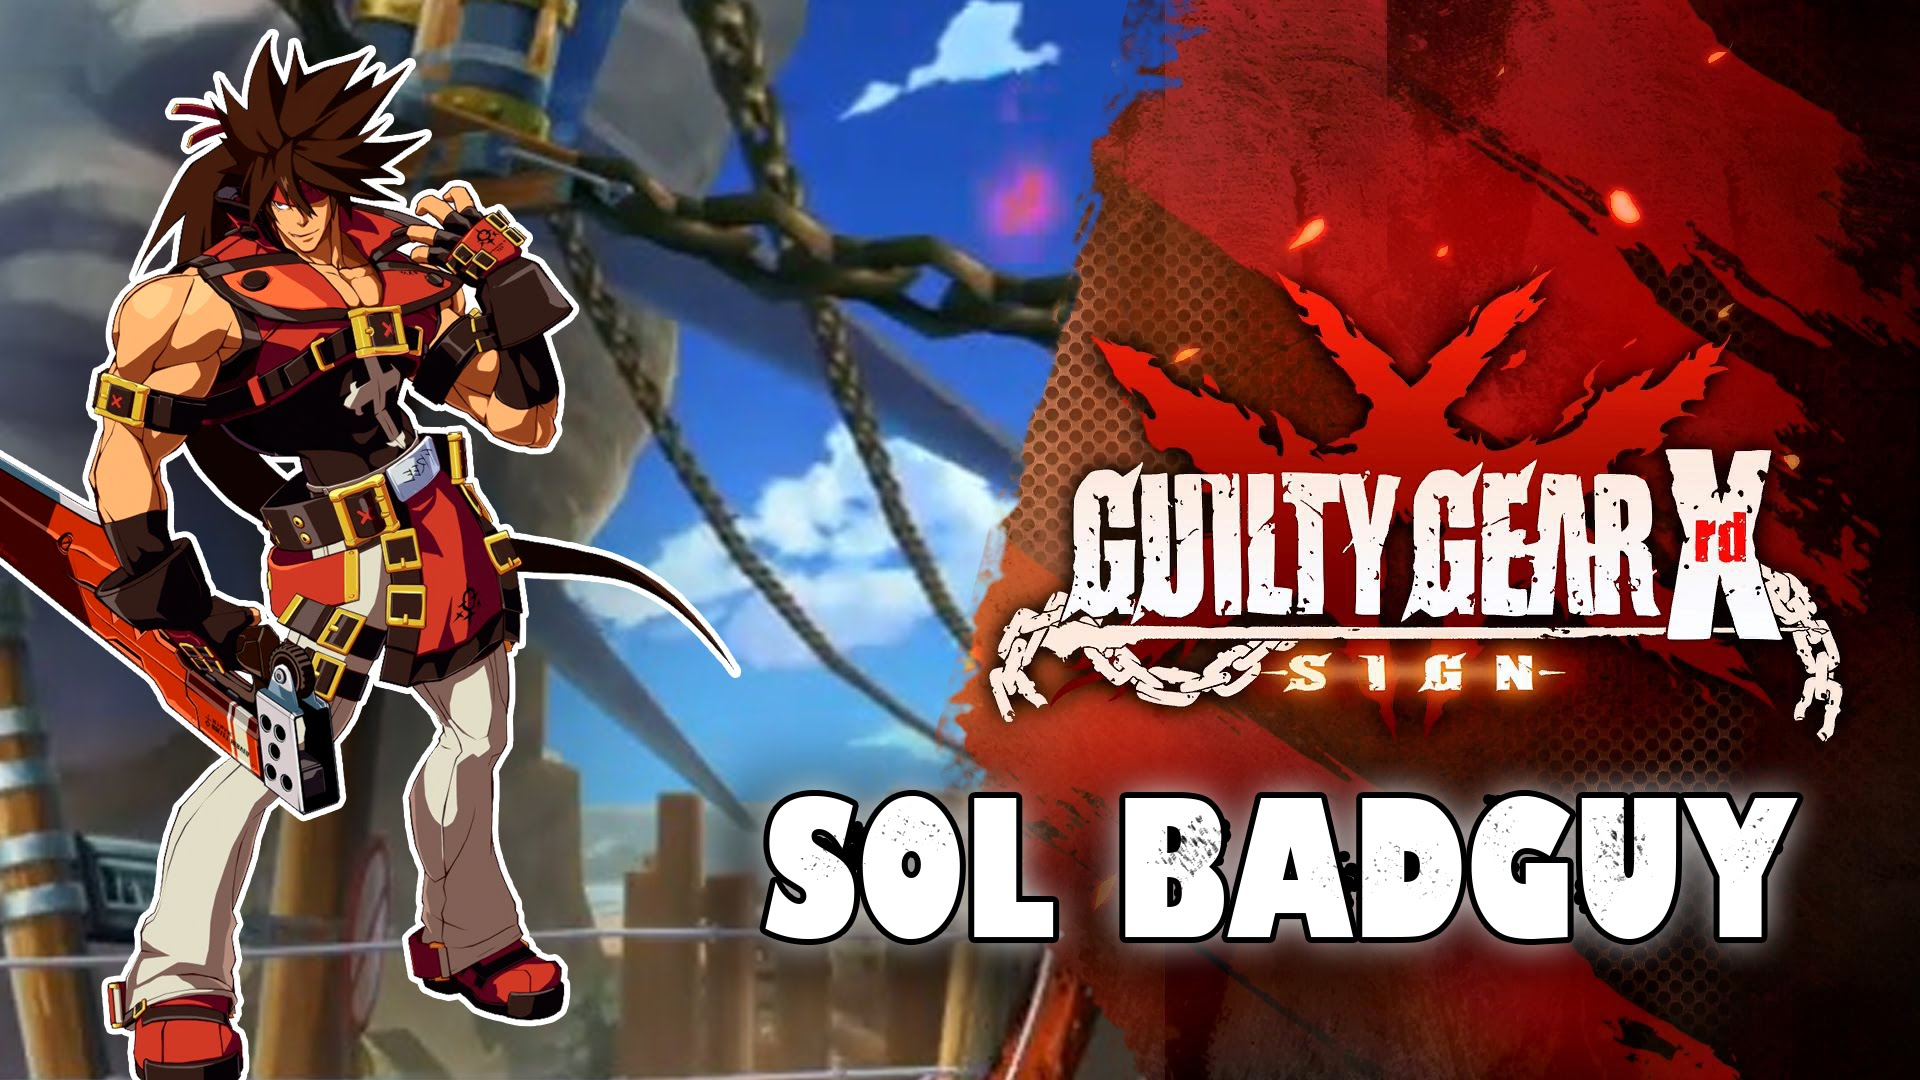 Guilty Gear: Sol Badguy Desktop wallpaper